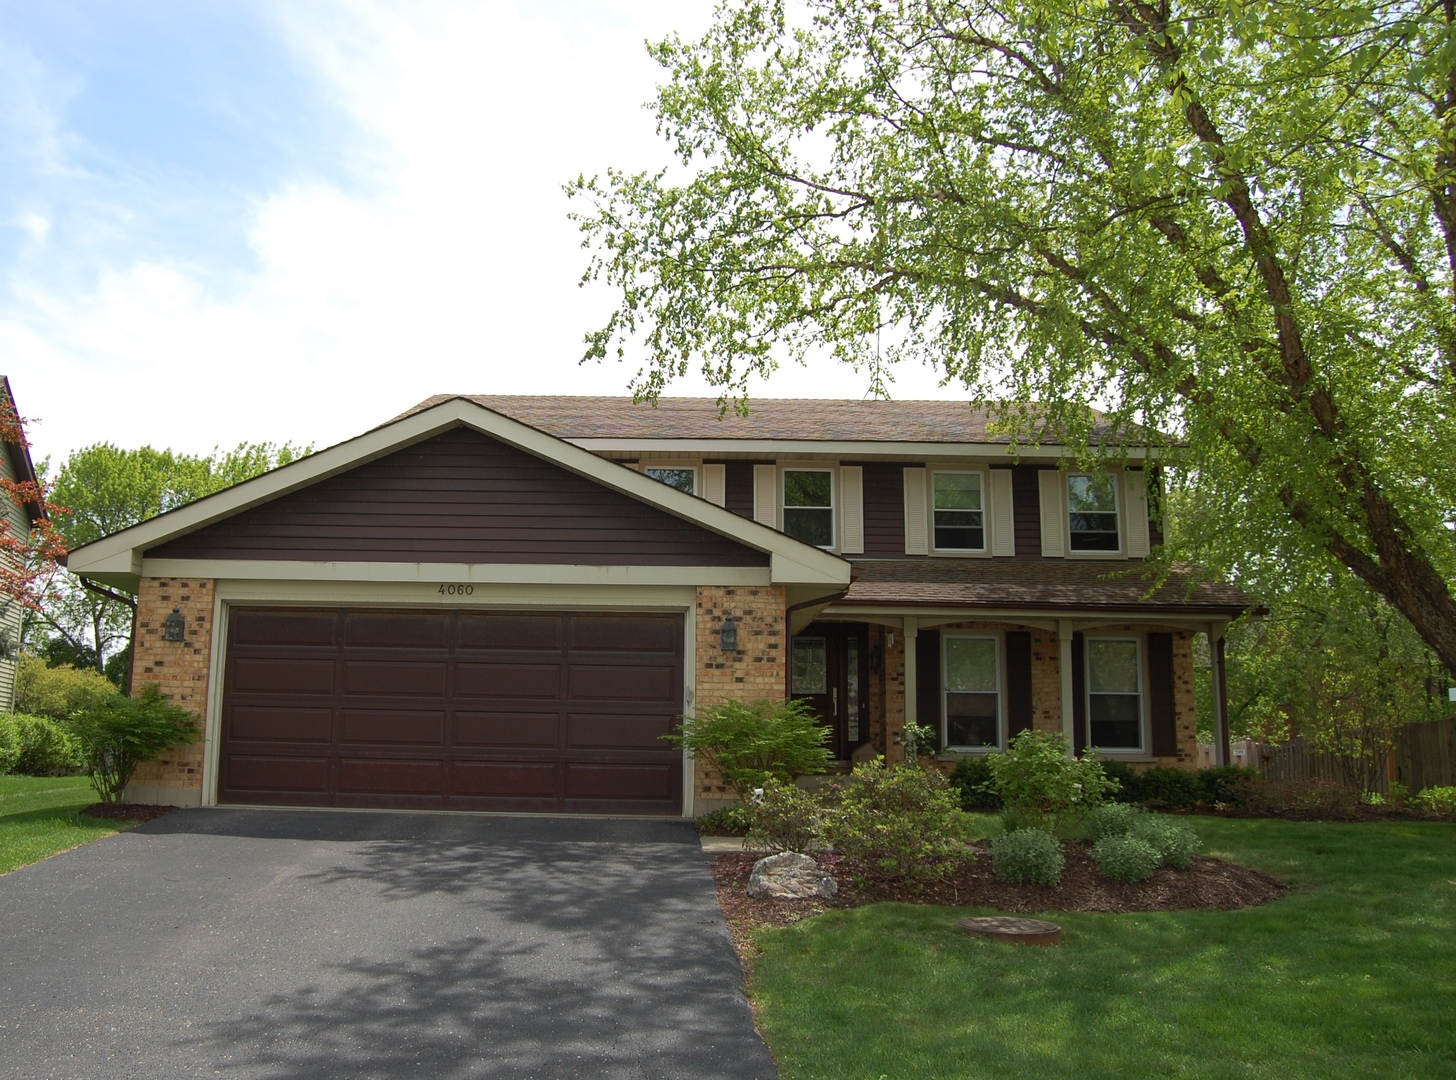 4060 Lindenwood Lane, Northbrook, Illinois